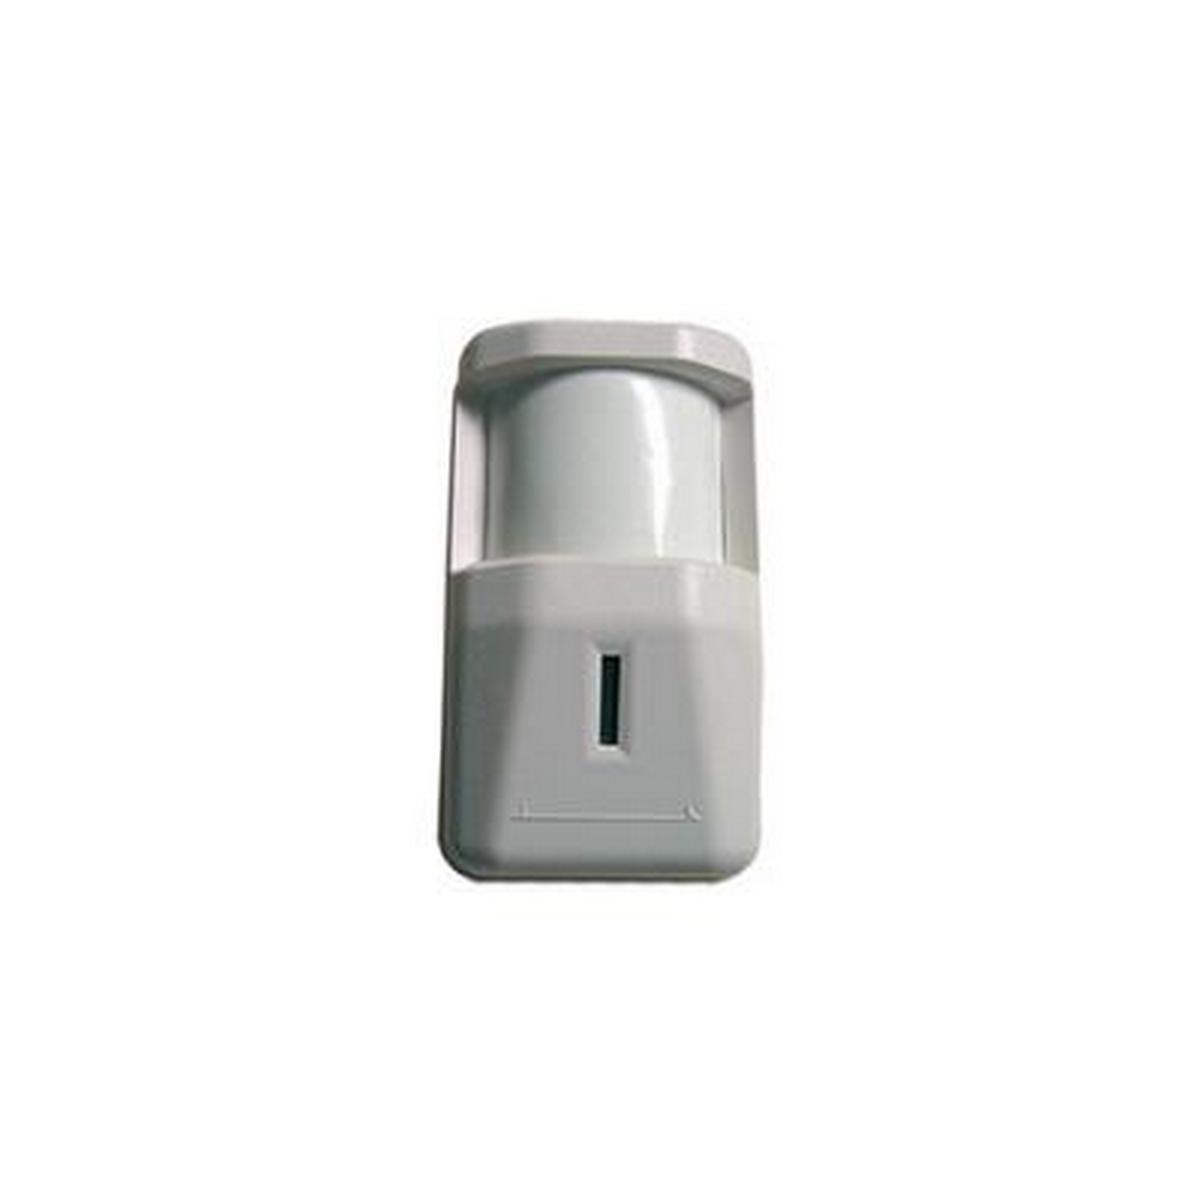 COVERT MOTION DETECTOR CAMERA 1/3 SONY CCD, 420TV LINES, 3.6MM LENS, 12VDC WITH MICROPHONE - NO POWER SUPPLY INCLUDED